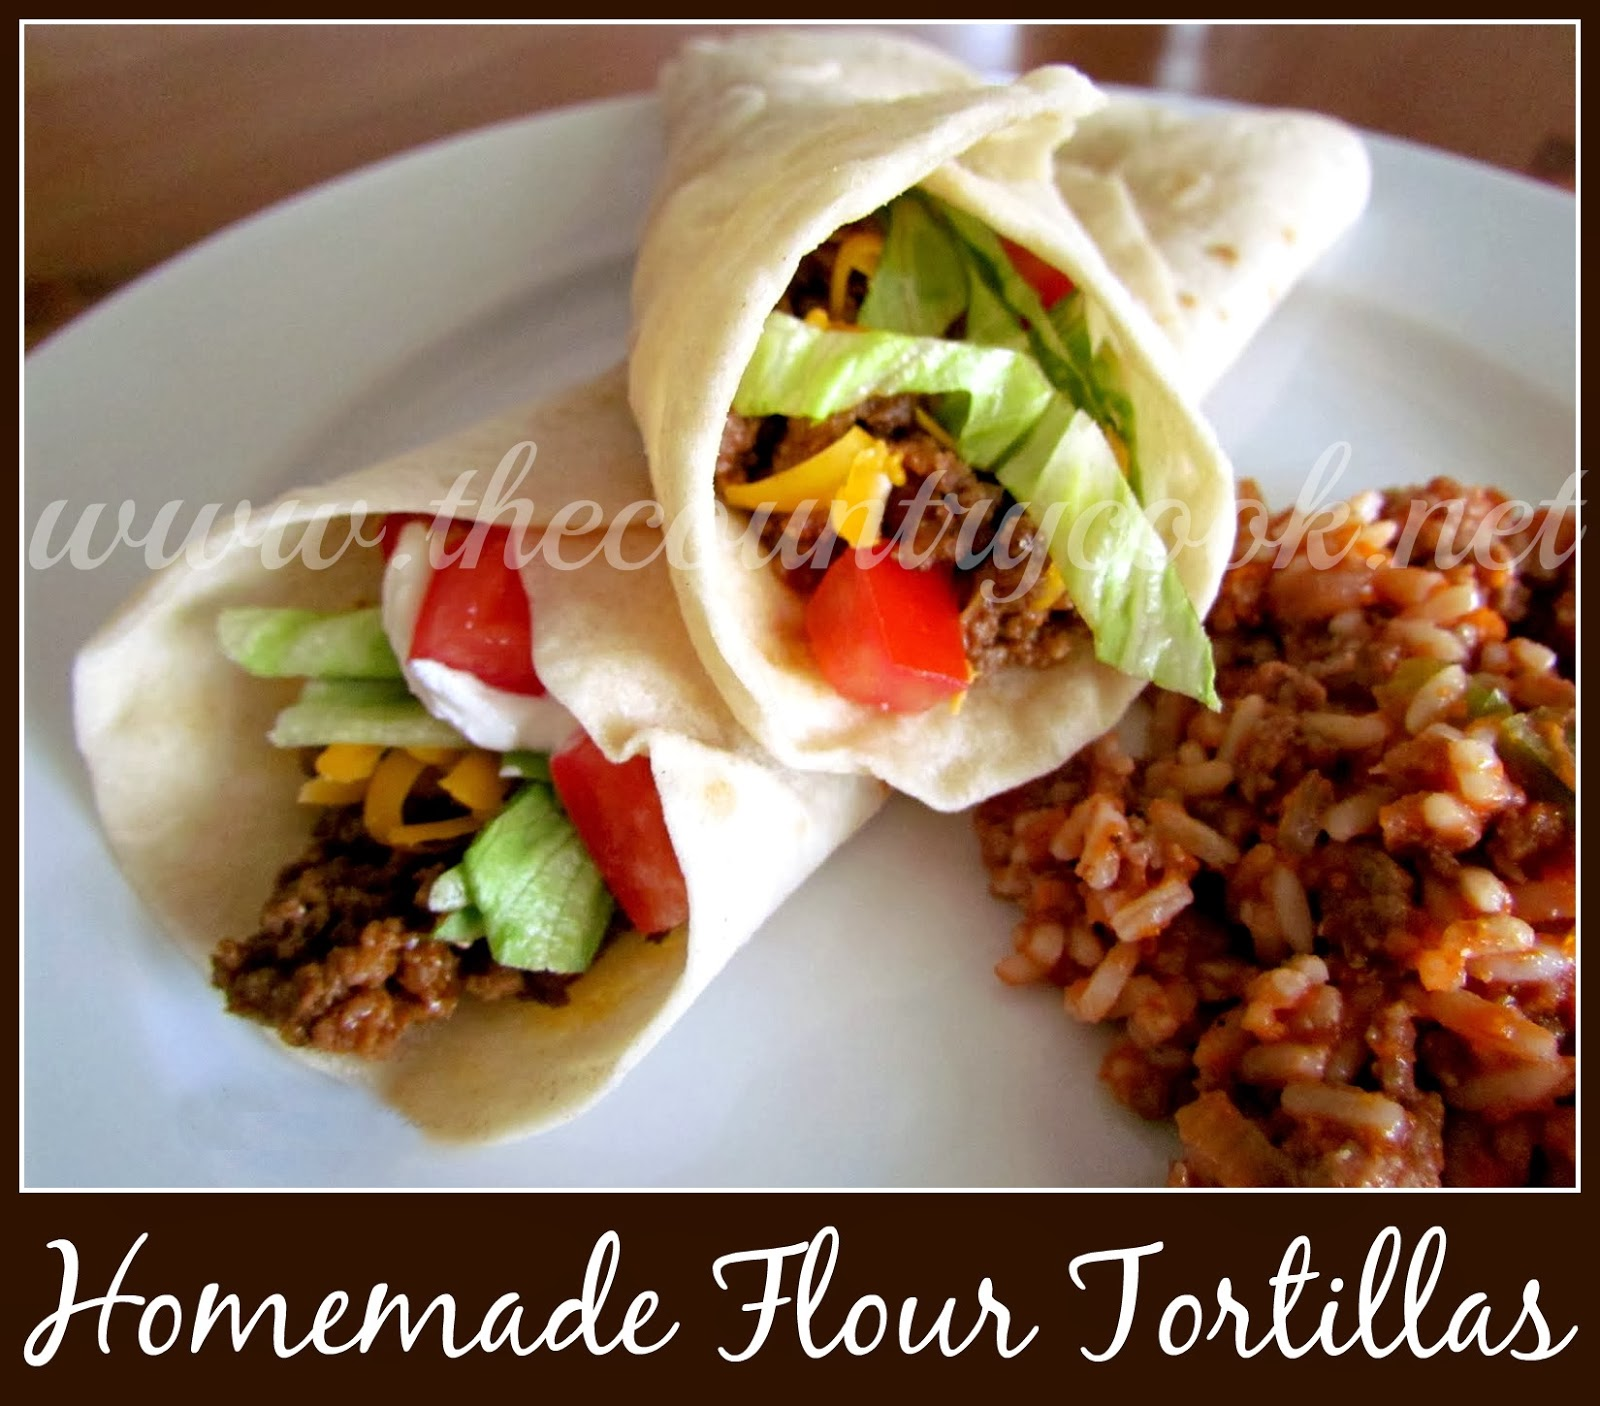 The Country Cook: Homemade Flour Tortillas